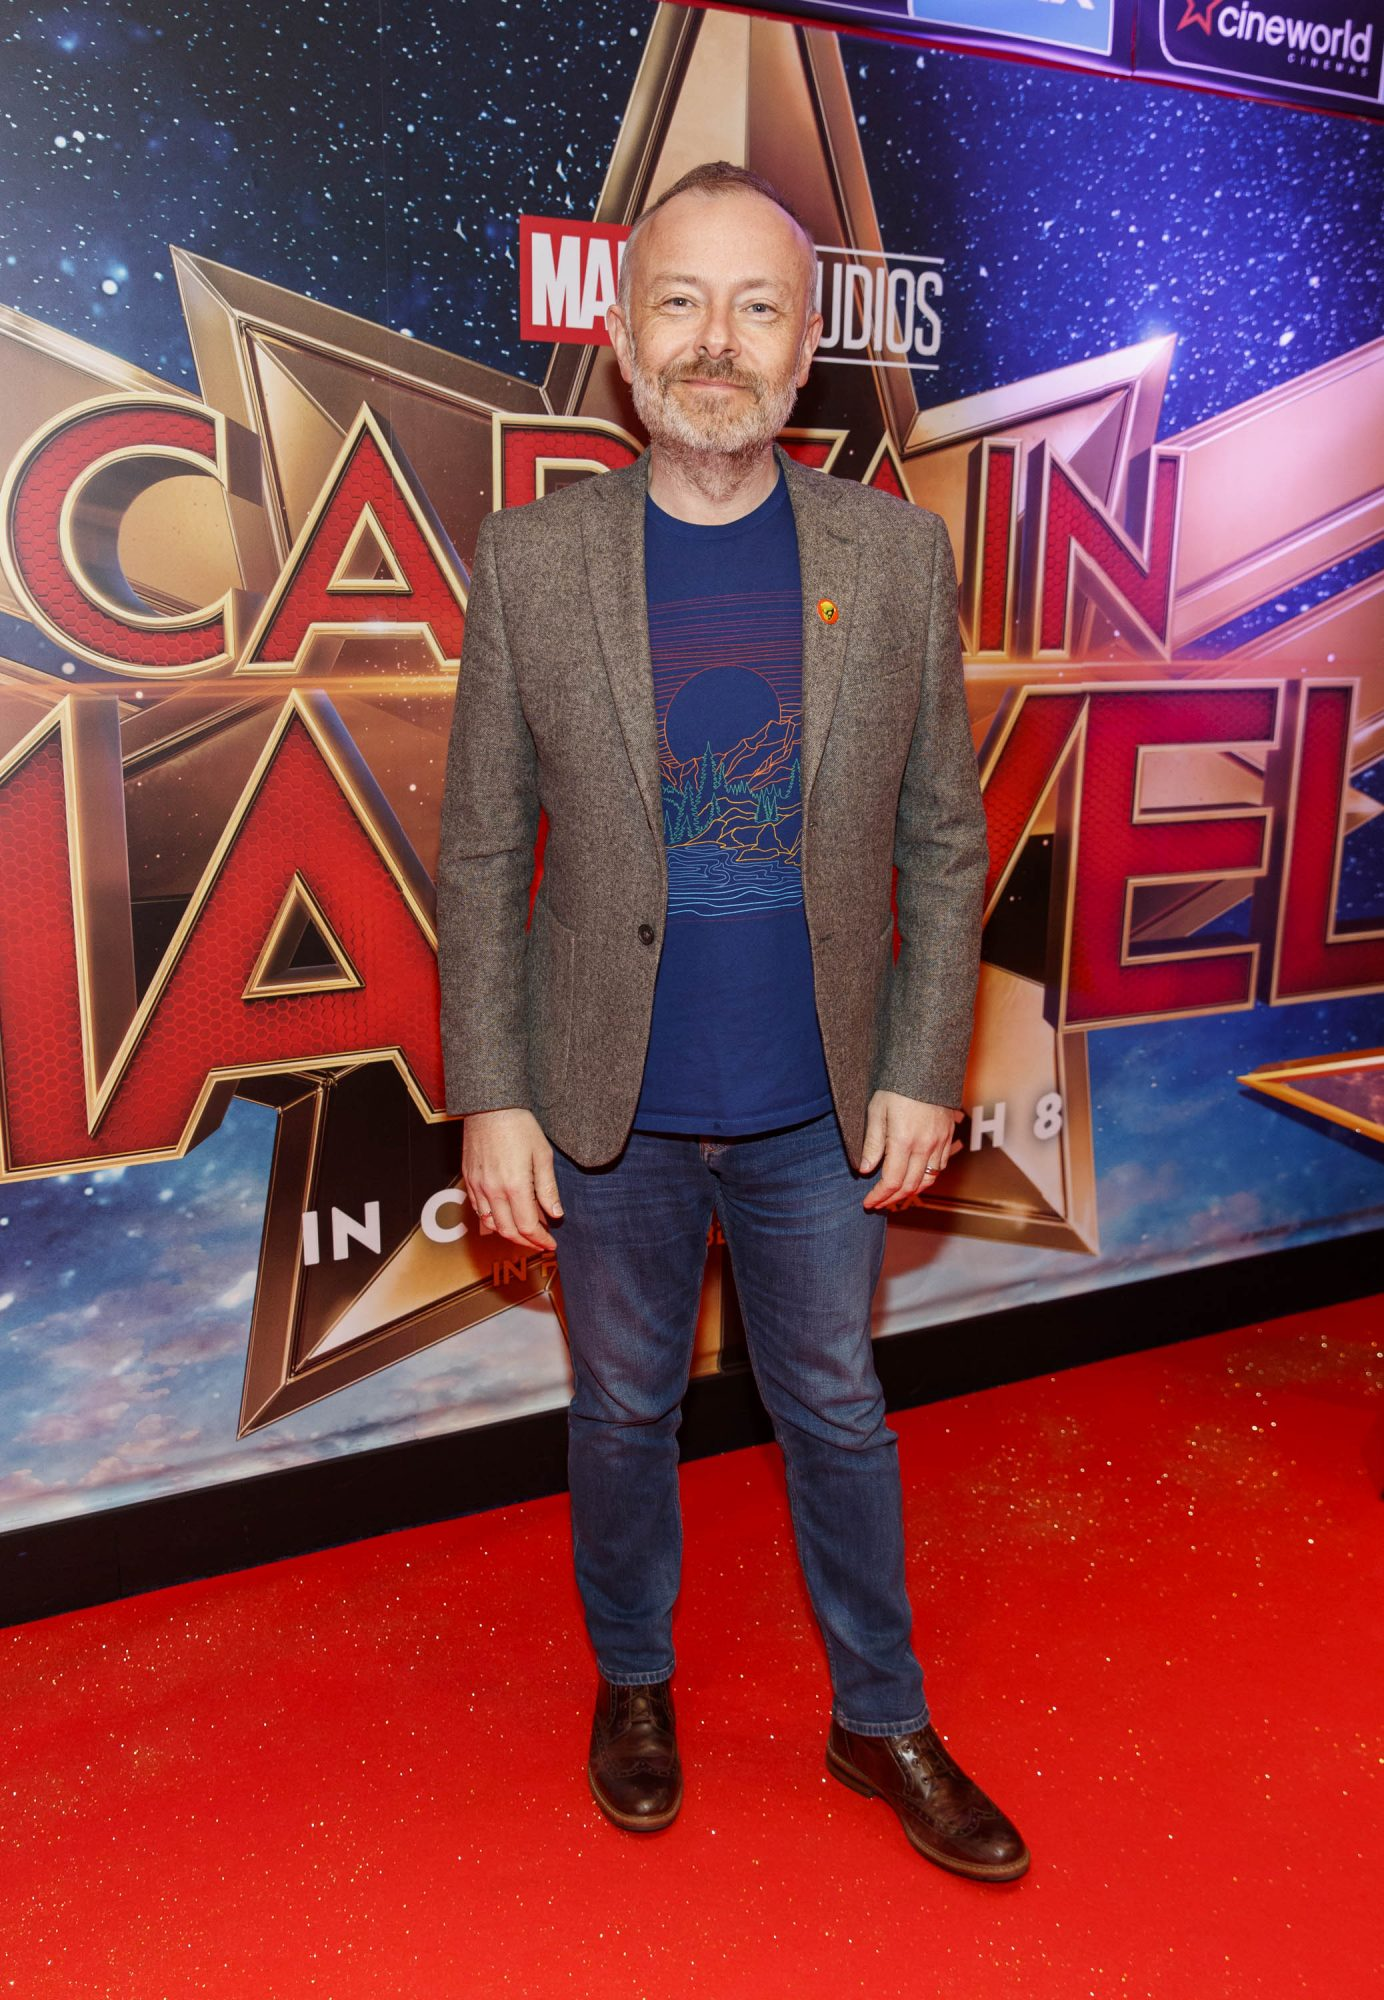 Rick O'Shea pictured at a special preview screening of CAPTAIN MARVEL in Cineworld Dublin. Picture by: Andres Poveda